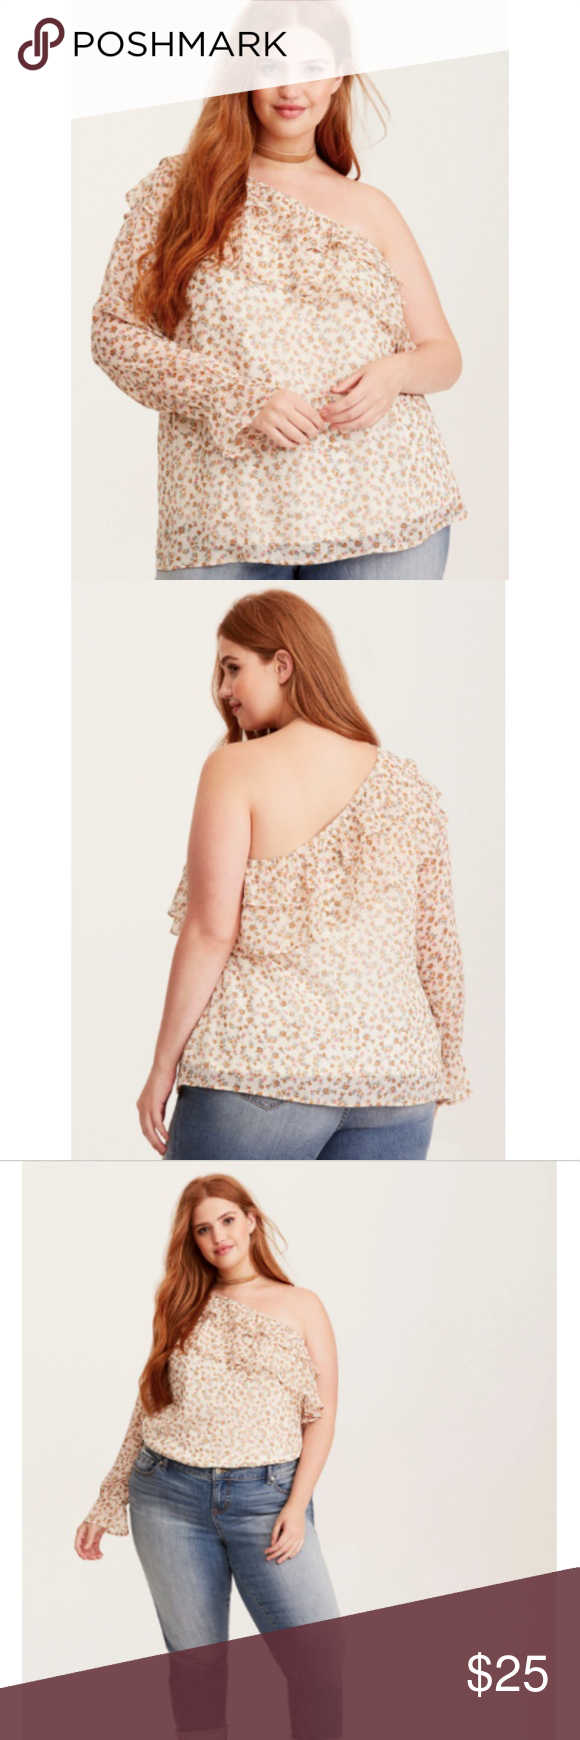 Right Now Ruffle Top - White/Black | Preforming outfits